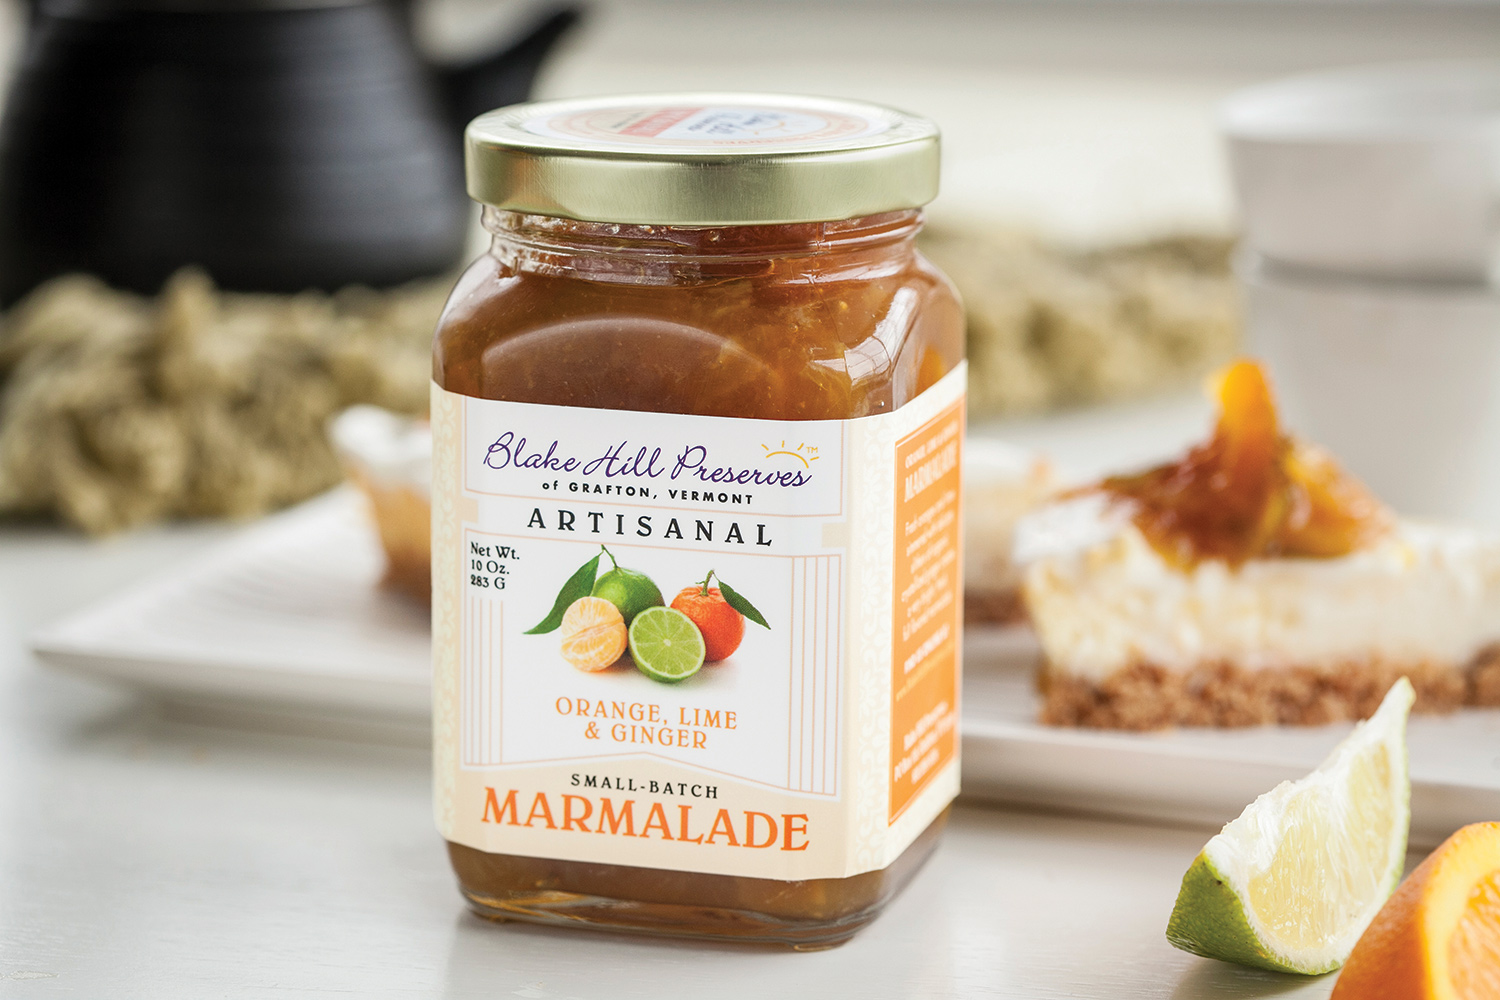 Blake Hill Preserves product photography